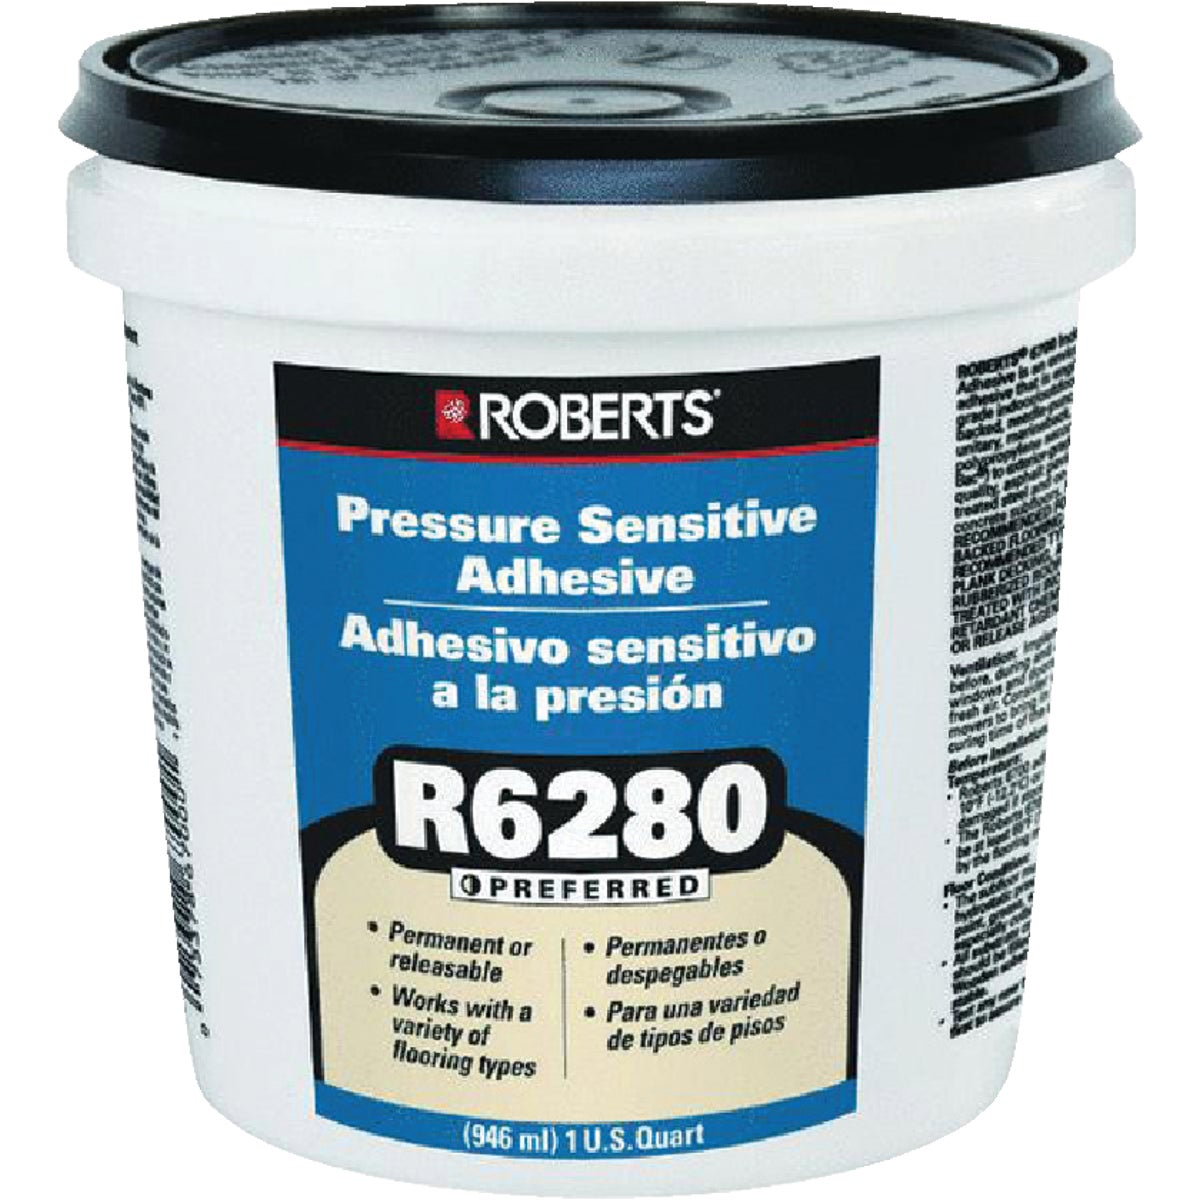 PRES SENSITIVE ADHESIVE - R6280-0 by Qep Co Inc Roberts